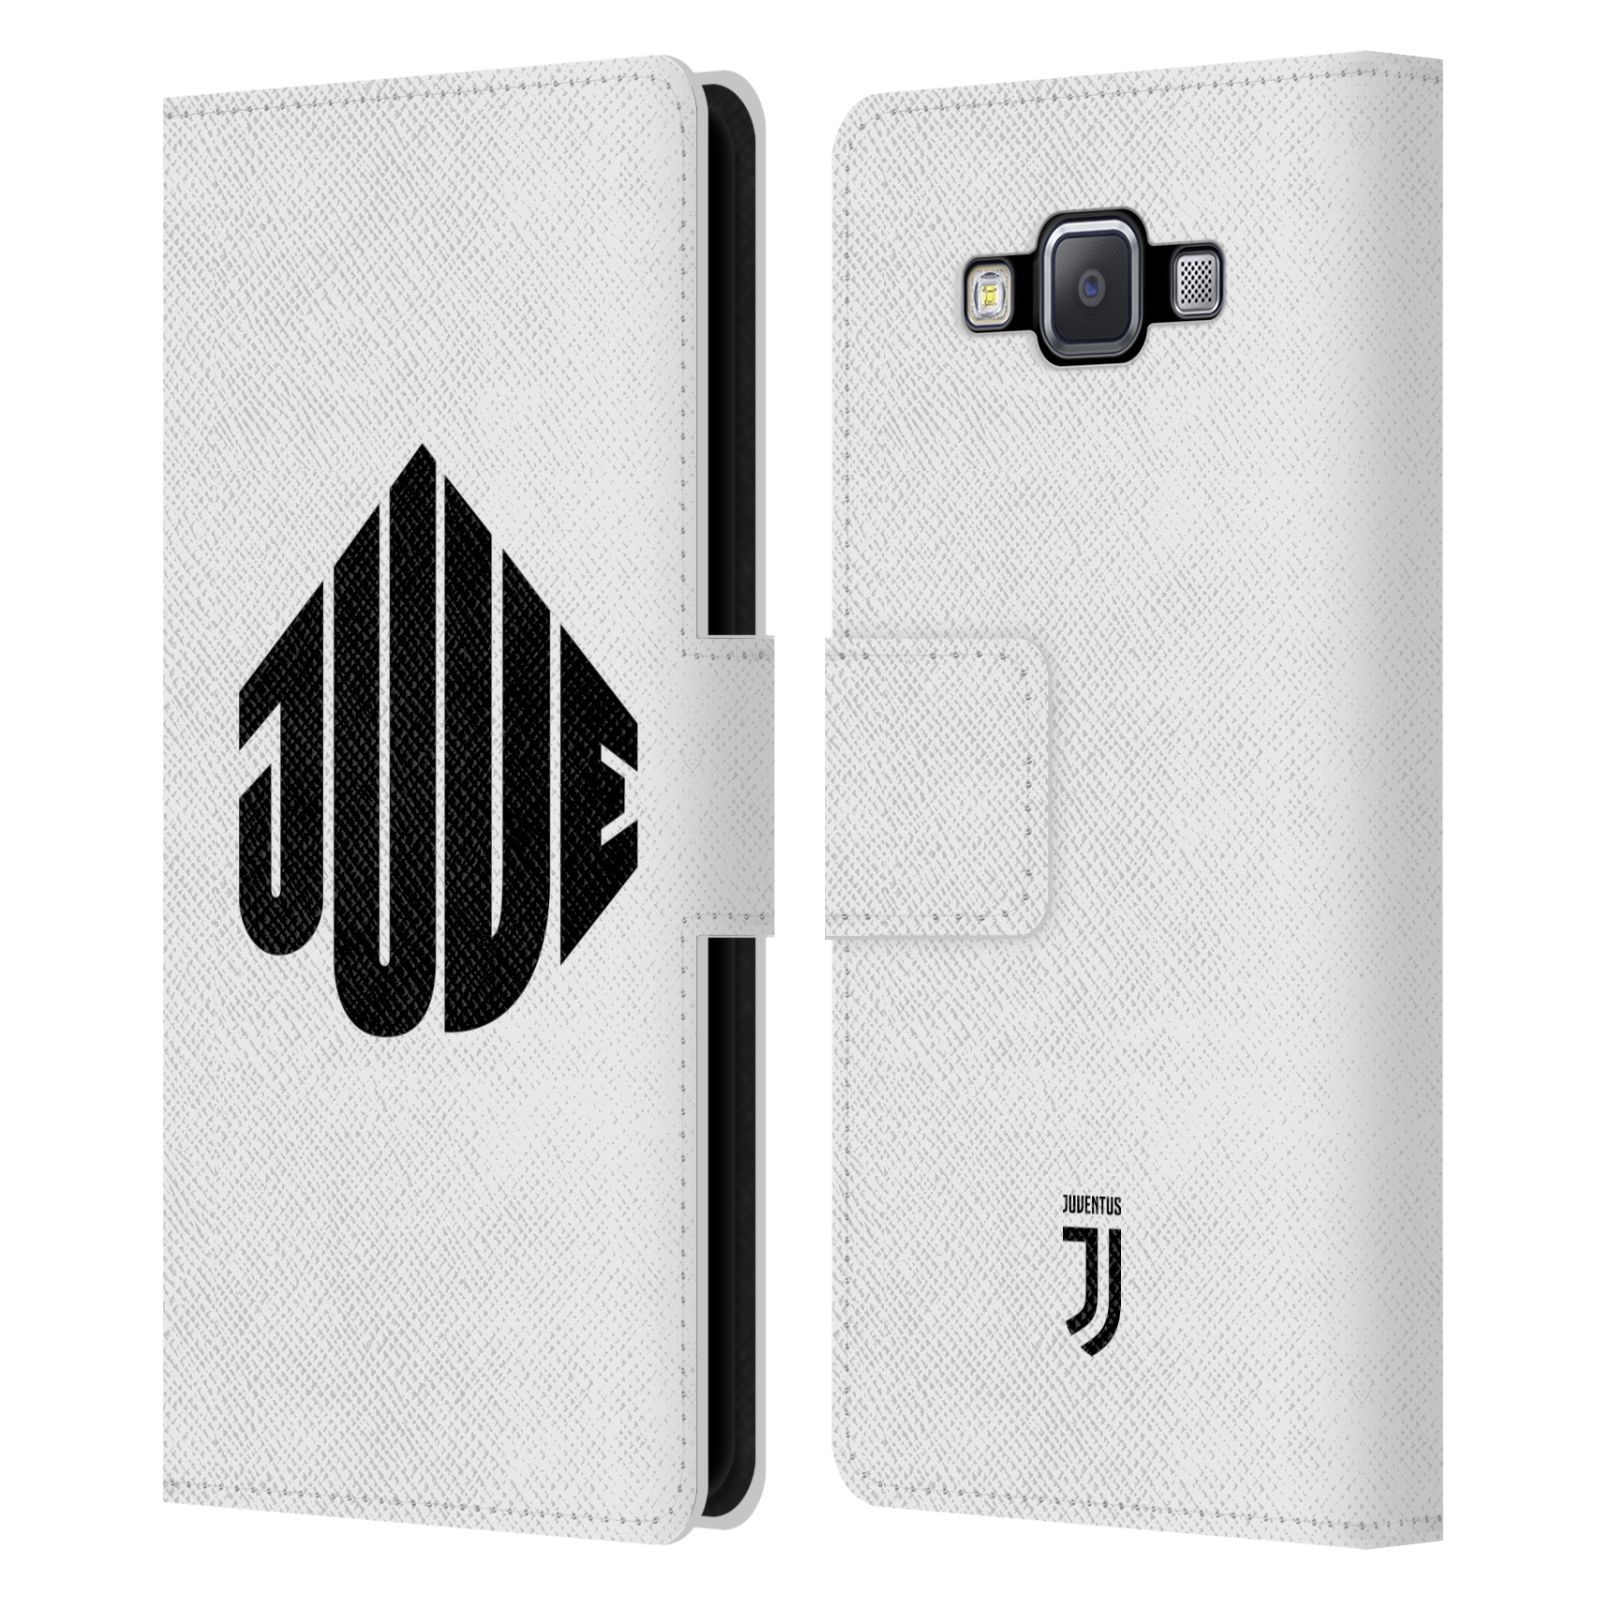 JUVENTUS-FC-2018-19-STREET-BADGE-LEATHER-BOOK-WALLET-CASE-FOR-SAMSUNG-PHONES-2